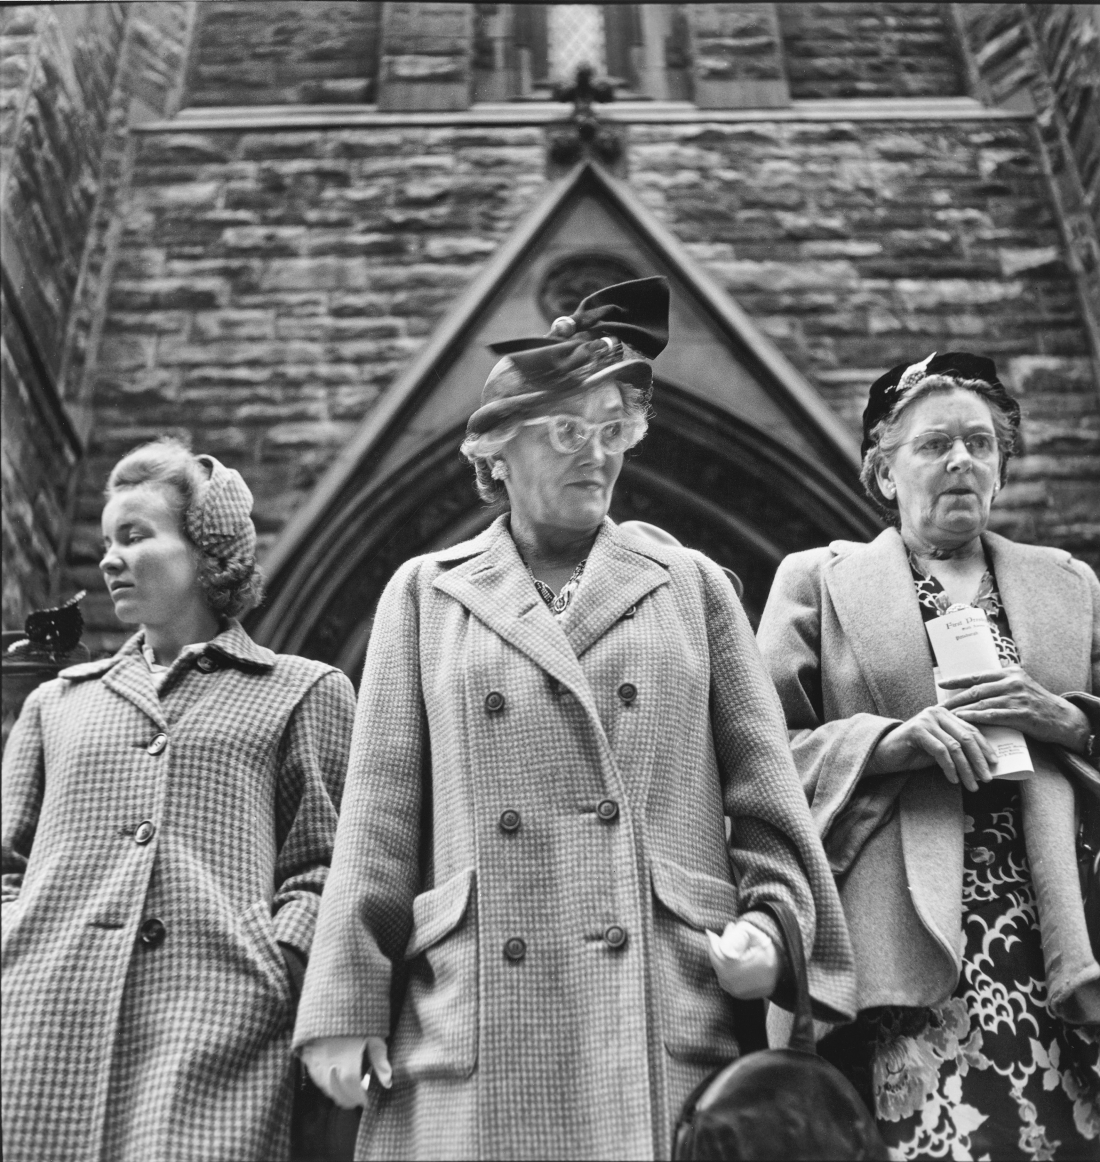 Outside Presbyterian Church on Sixth Avenue, September 1950 © Elliott Erwitt / Magnum Photos Courtesy: Carnegie Library of Pittsburgh